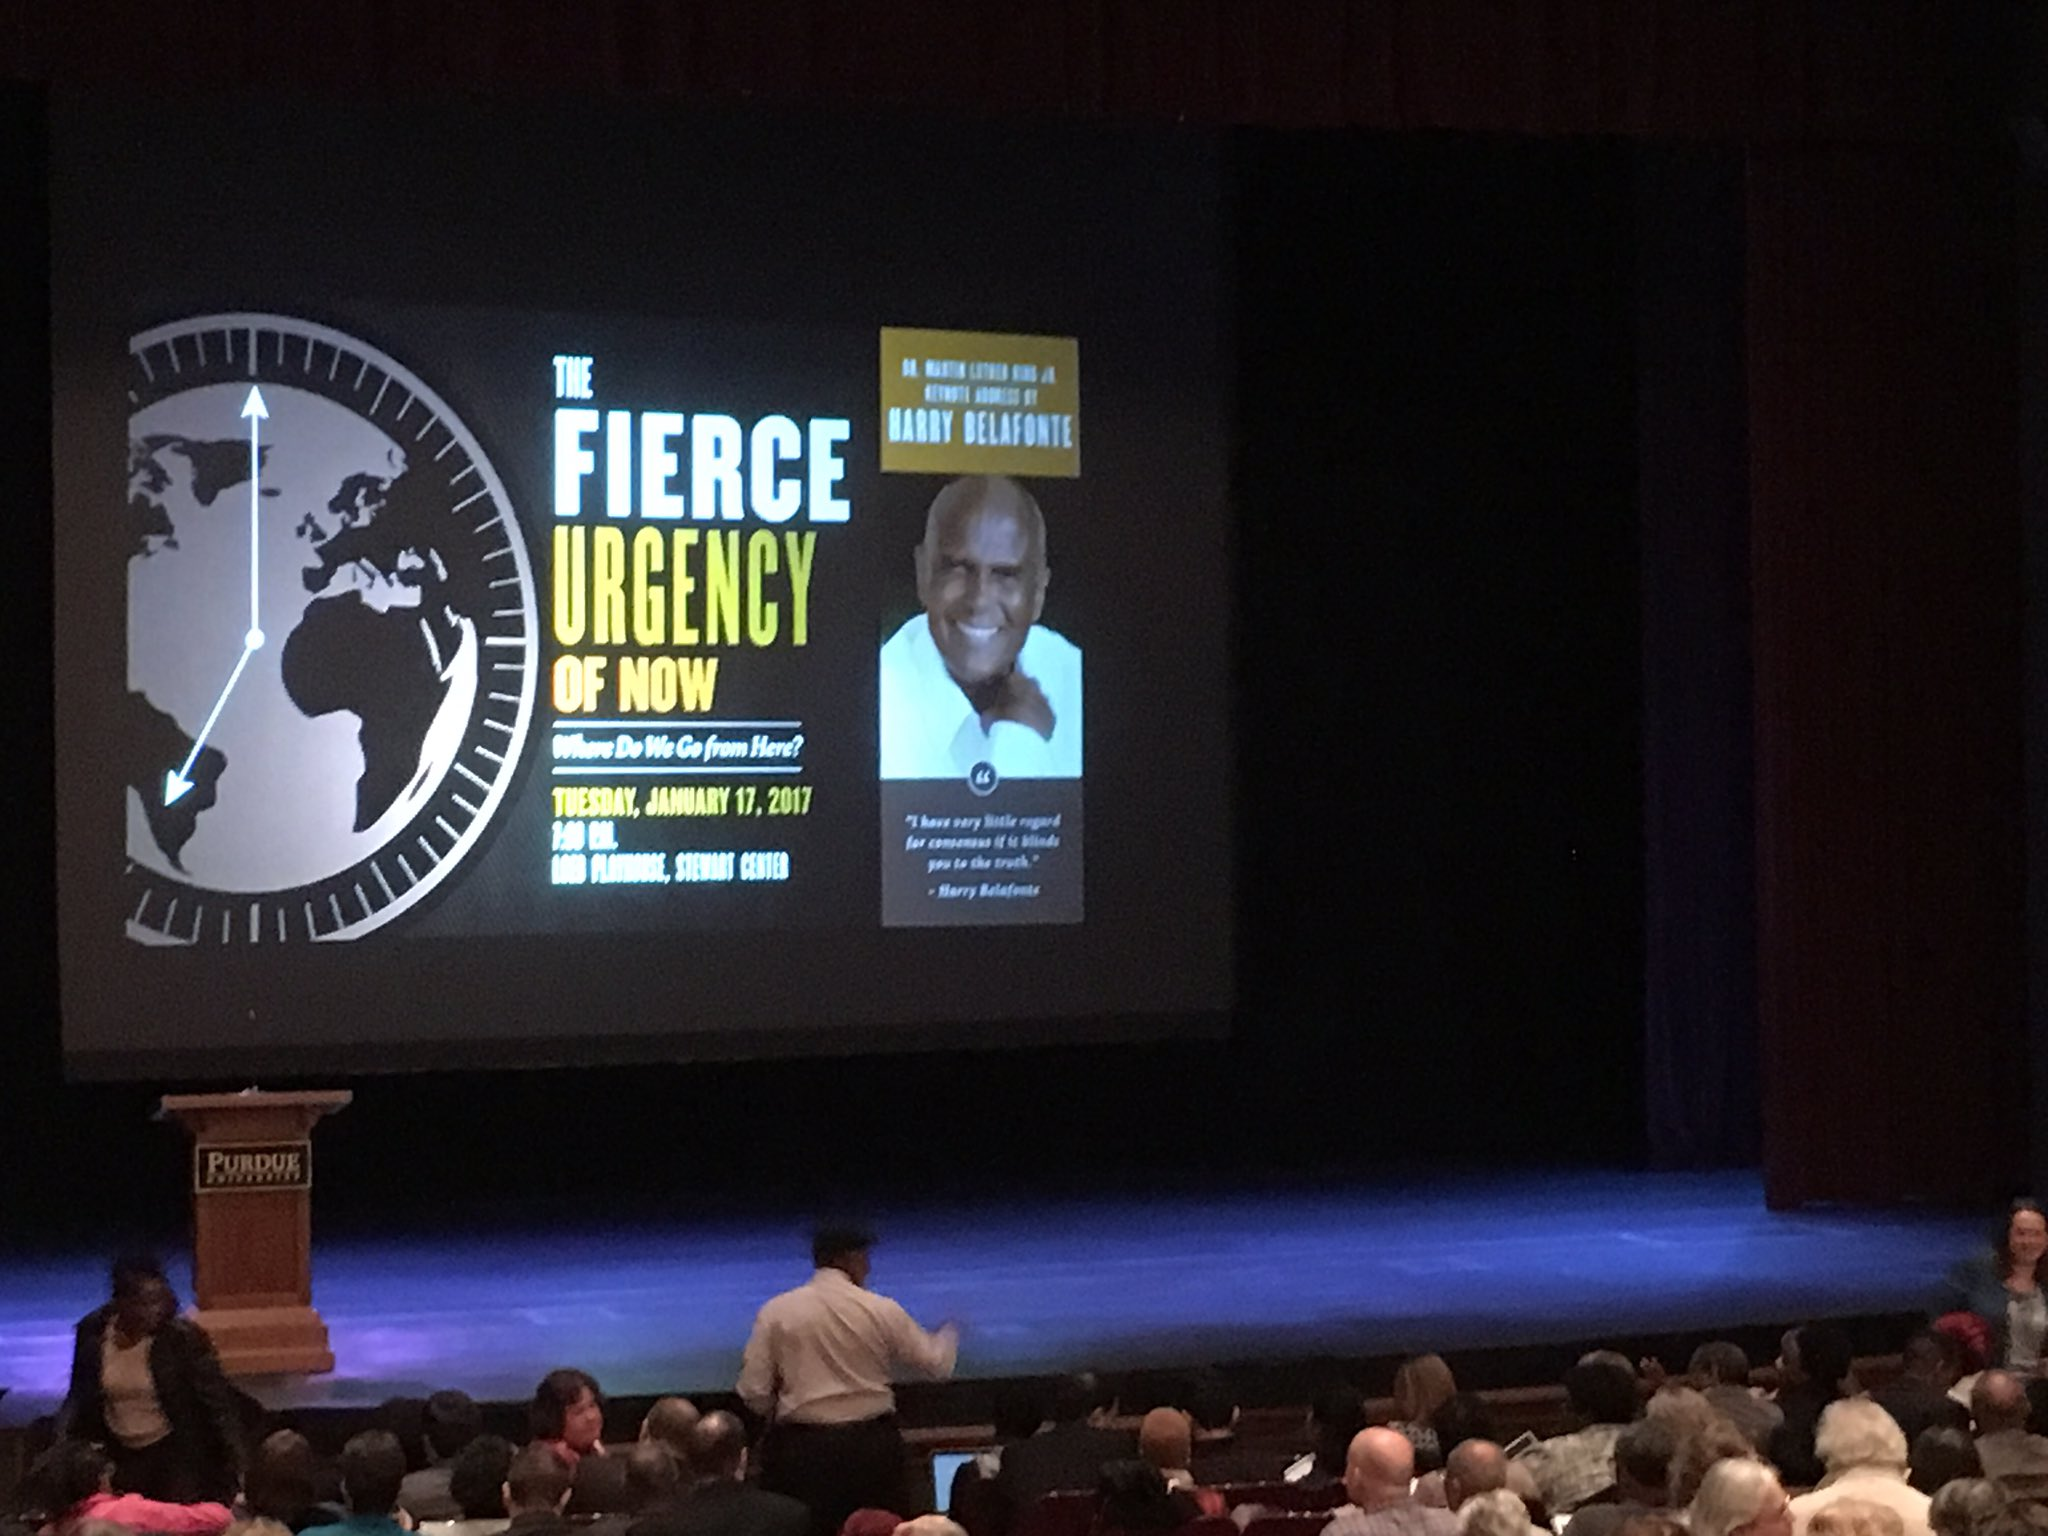 It's getting crowded at the @harrybelafonte talk at @LifeAtPurdue https://t.co/eo50mhqw6s